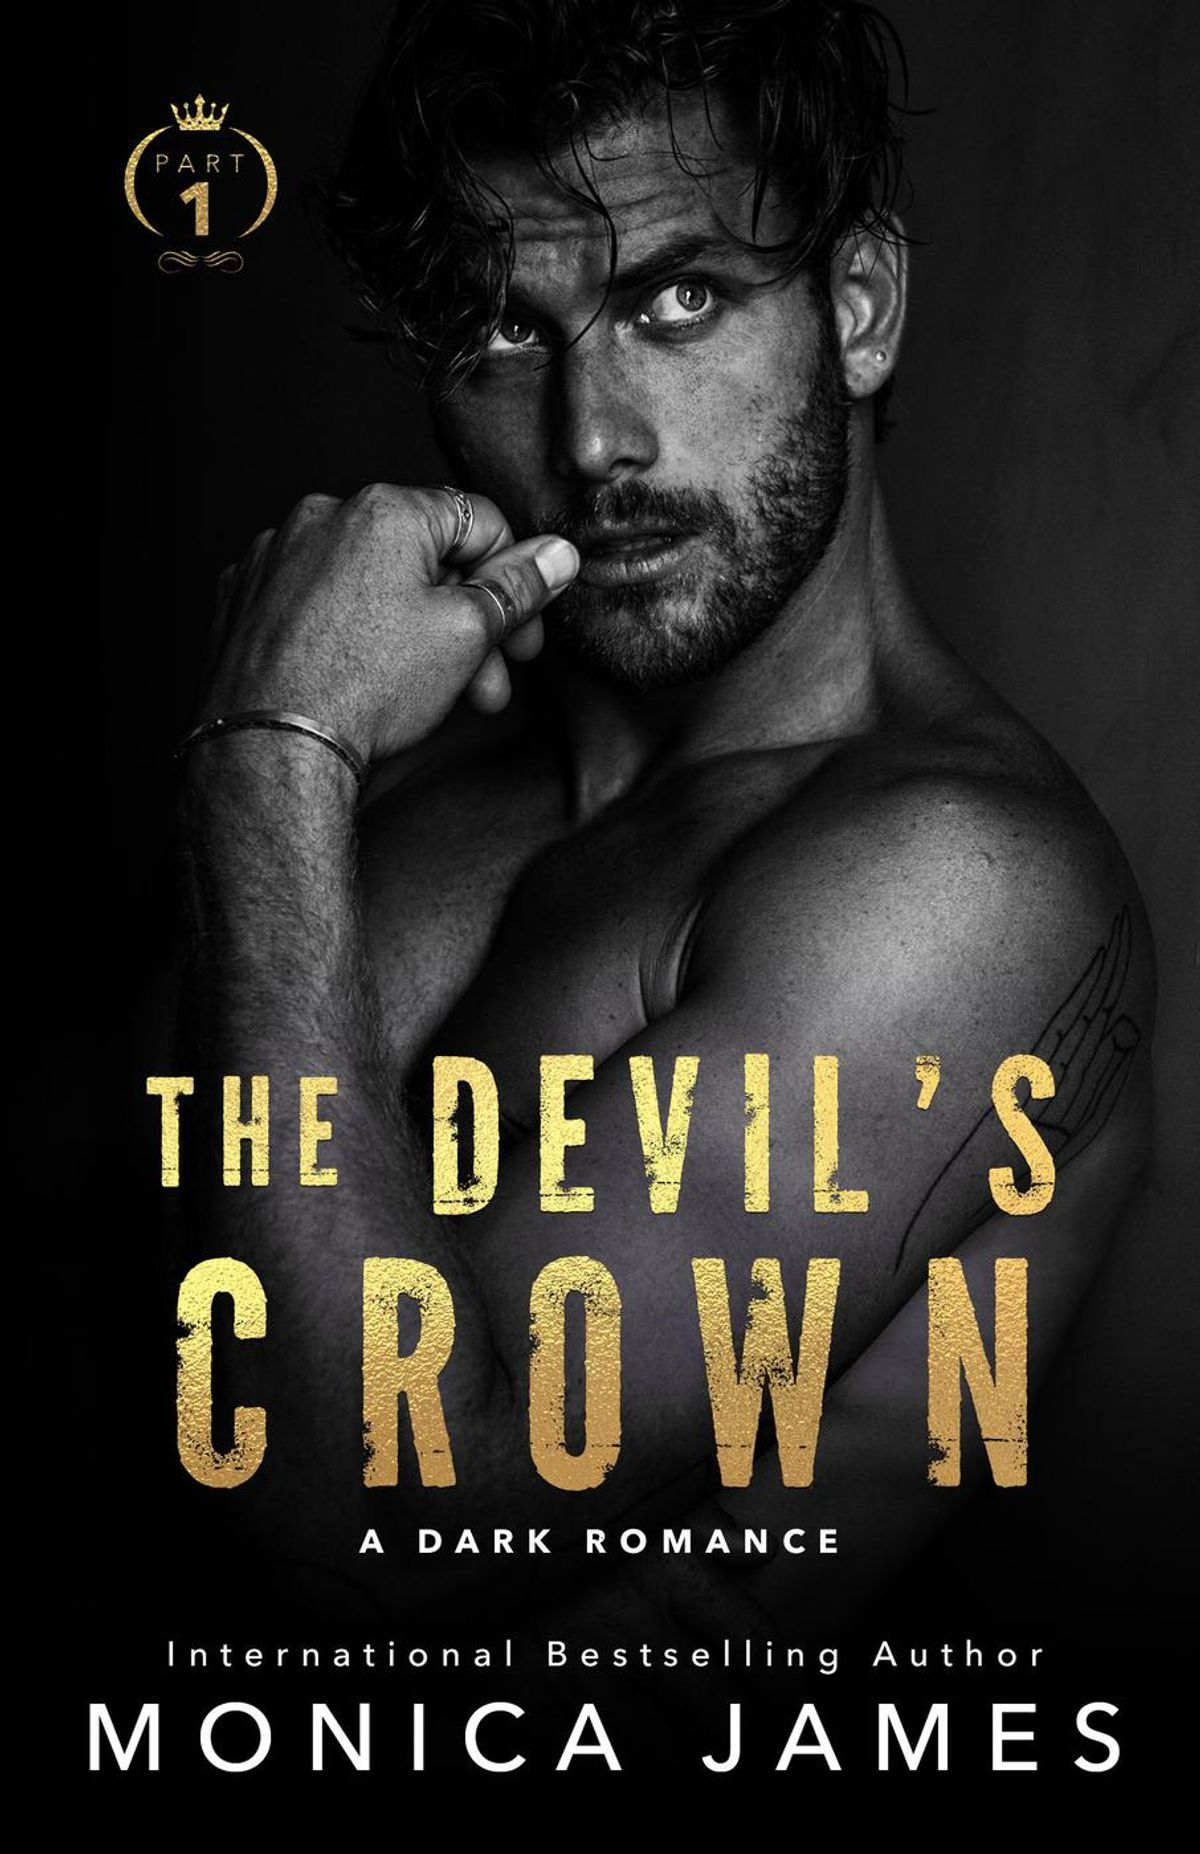 The Devil's Crown Monica James PDF Free Download